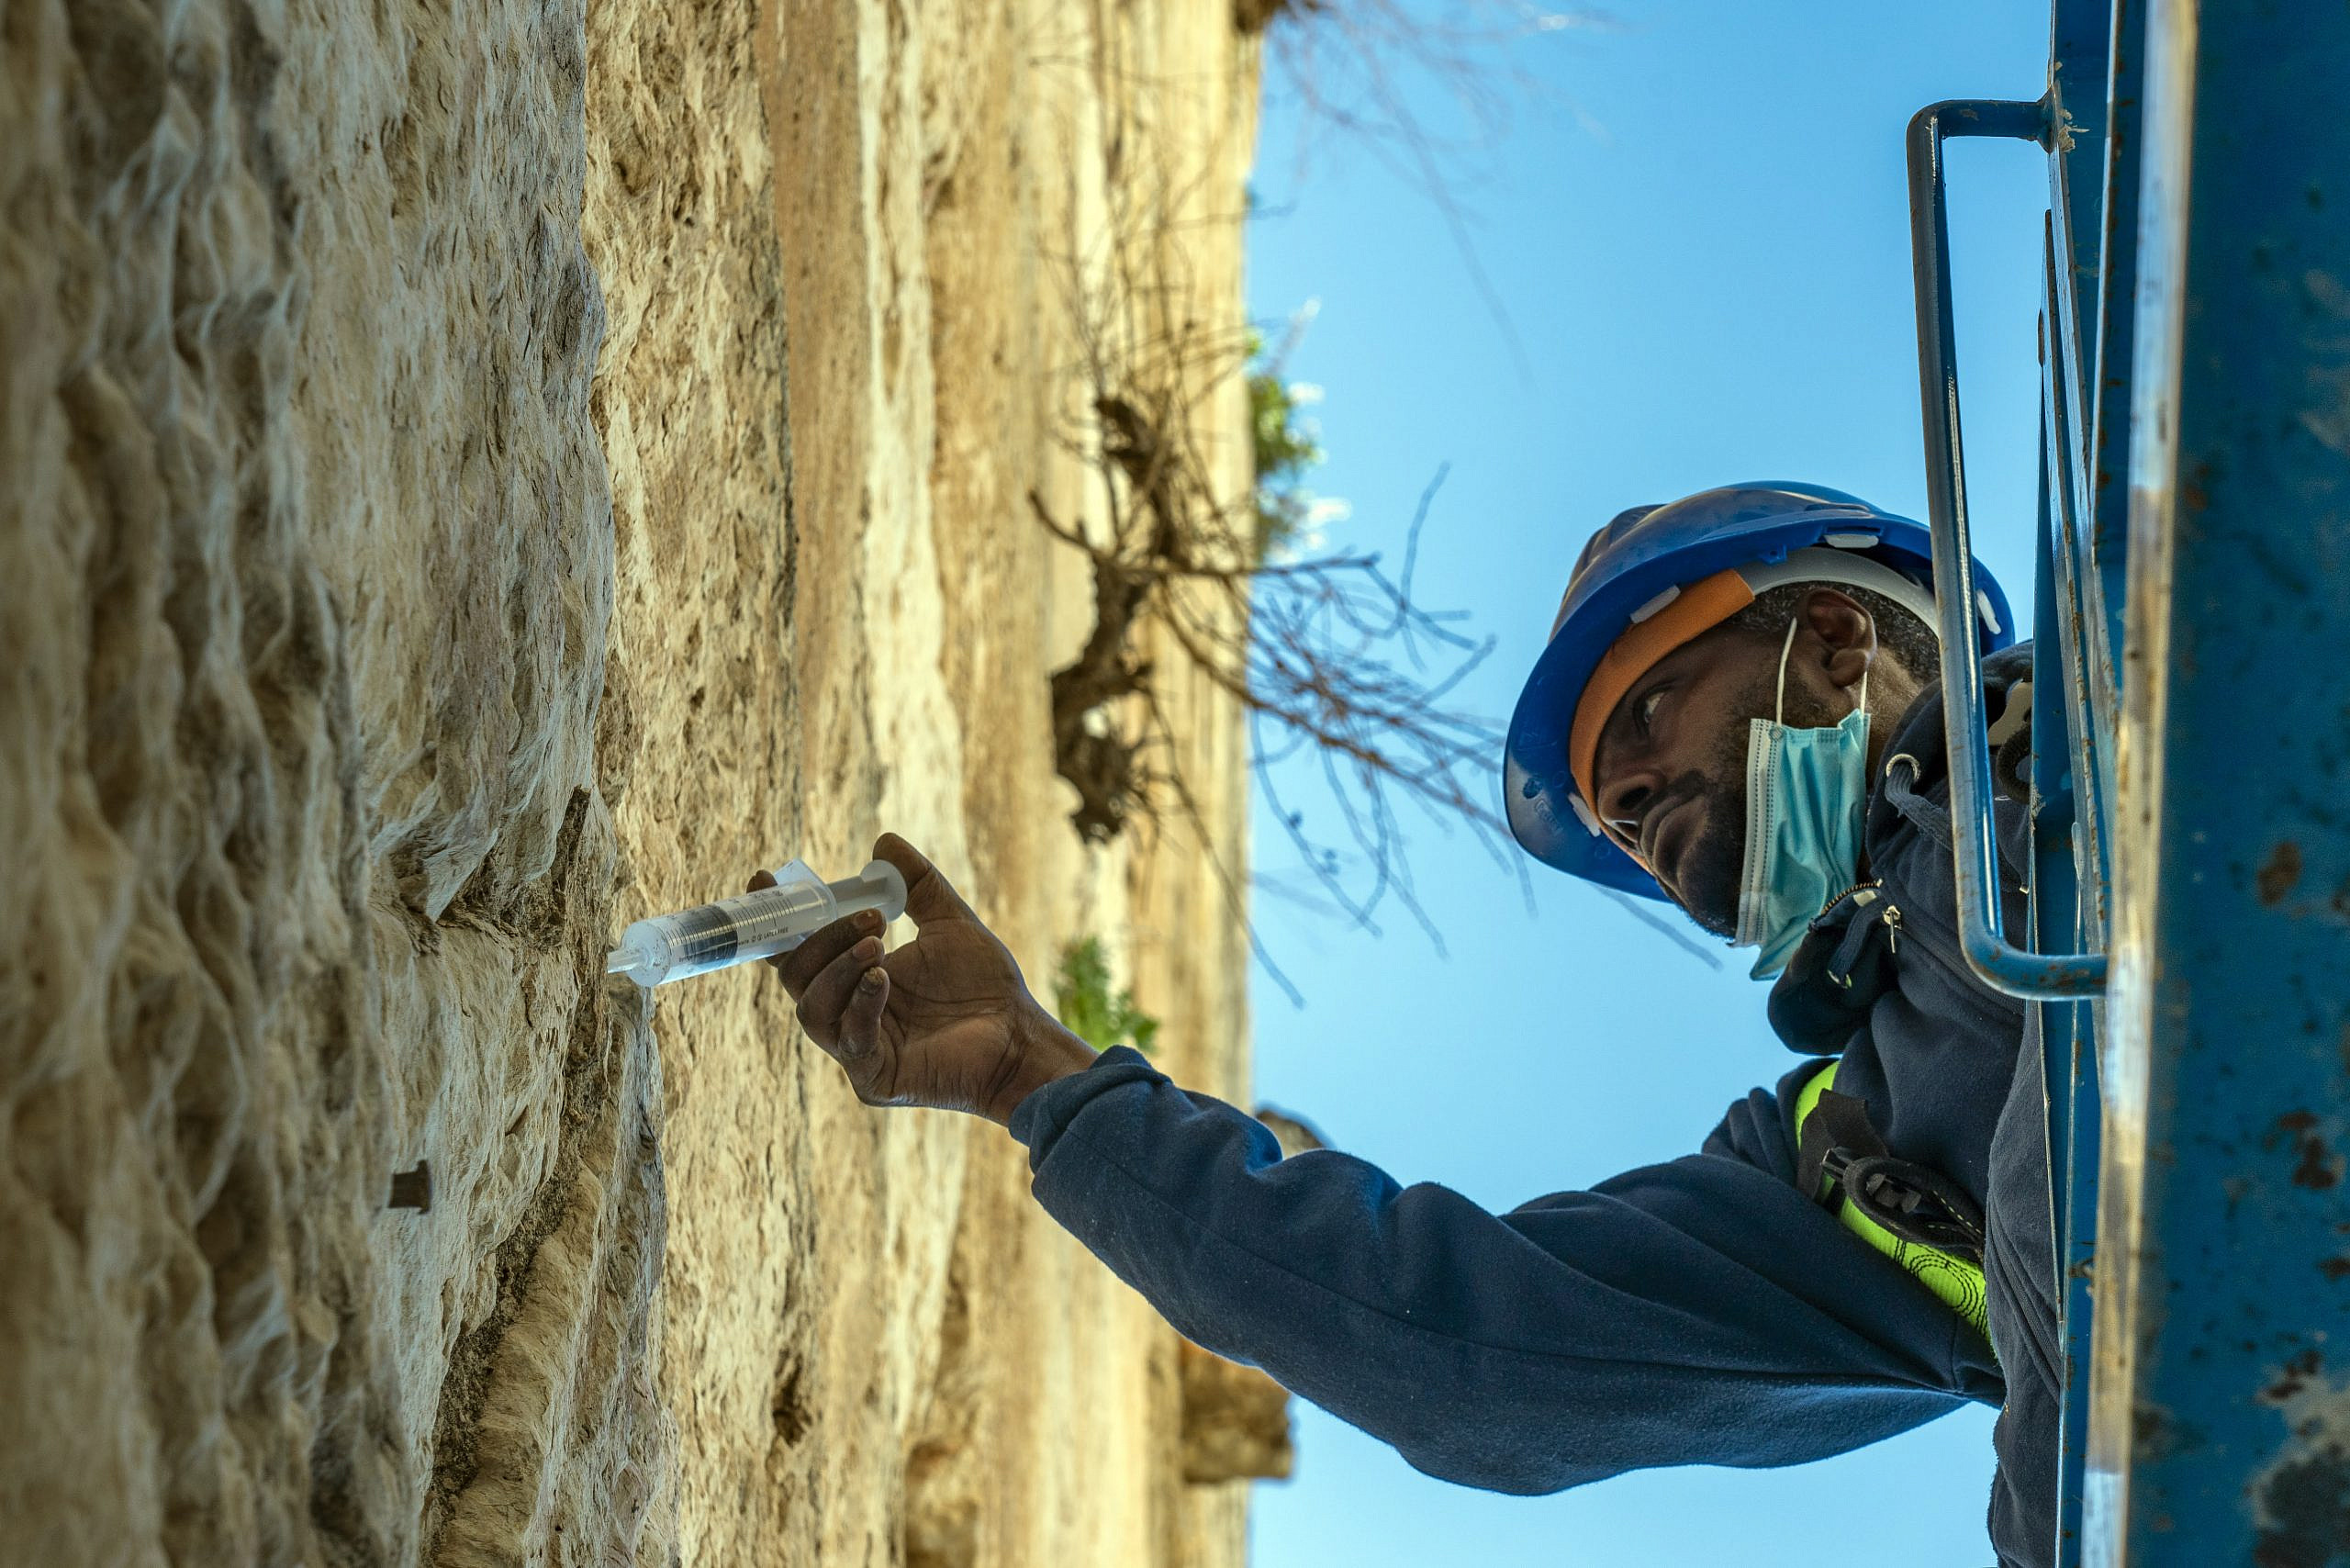 Western Wall Stones Get 'Injection' Before Passover 2